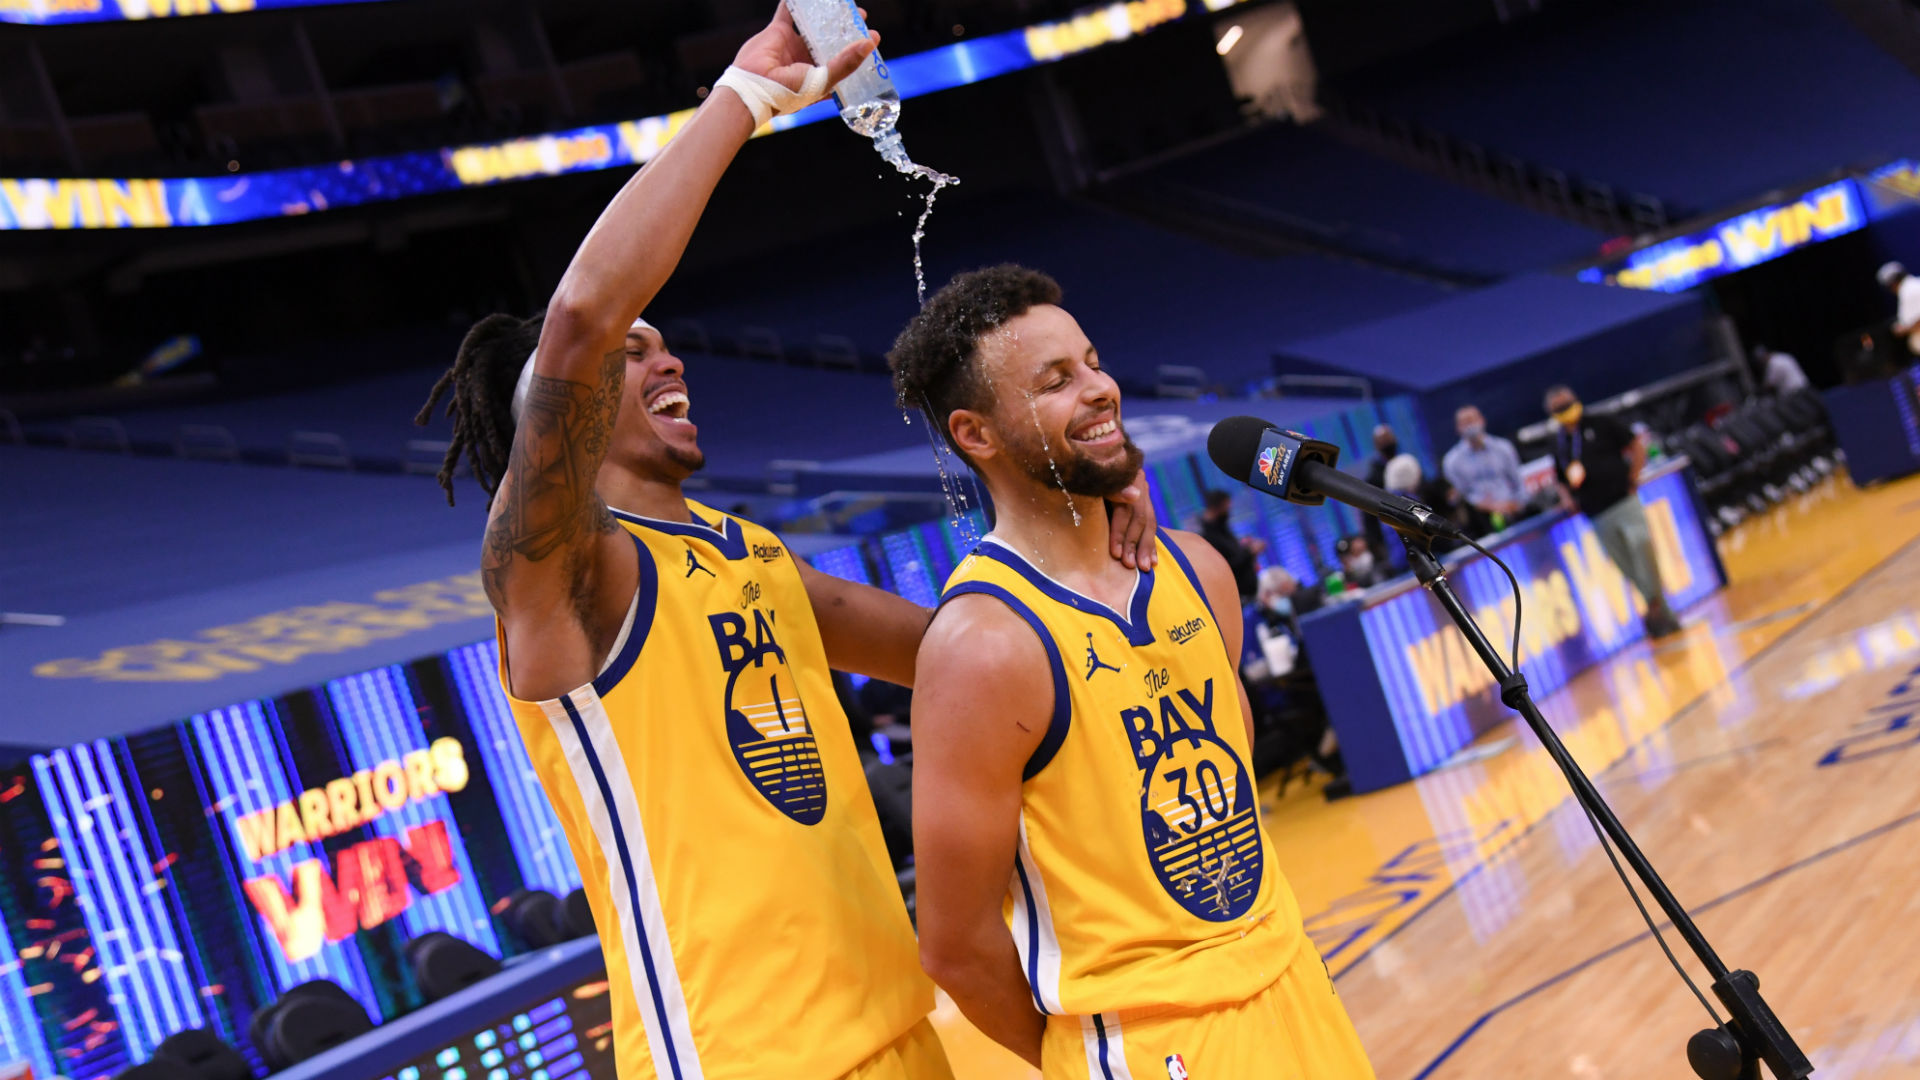 Cue the Jordan meme - Curry responds to critics with 62-point show in Warriors win